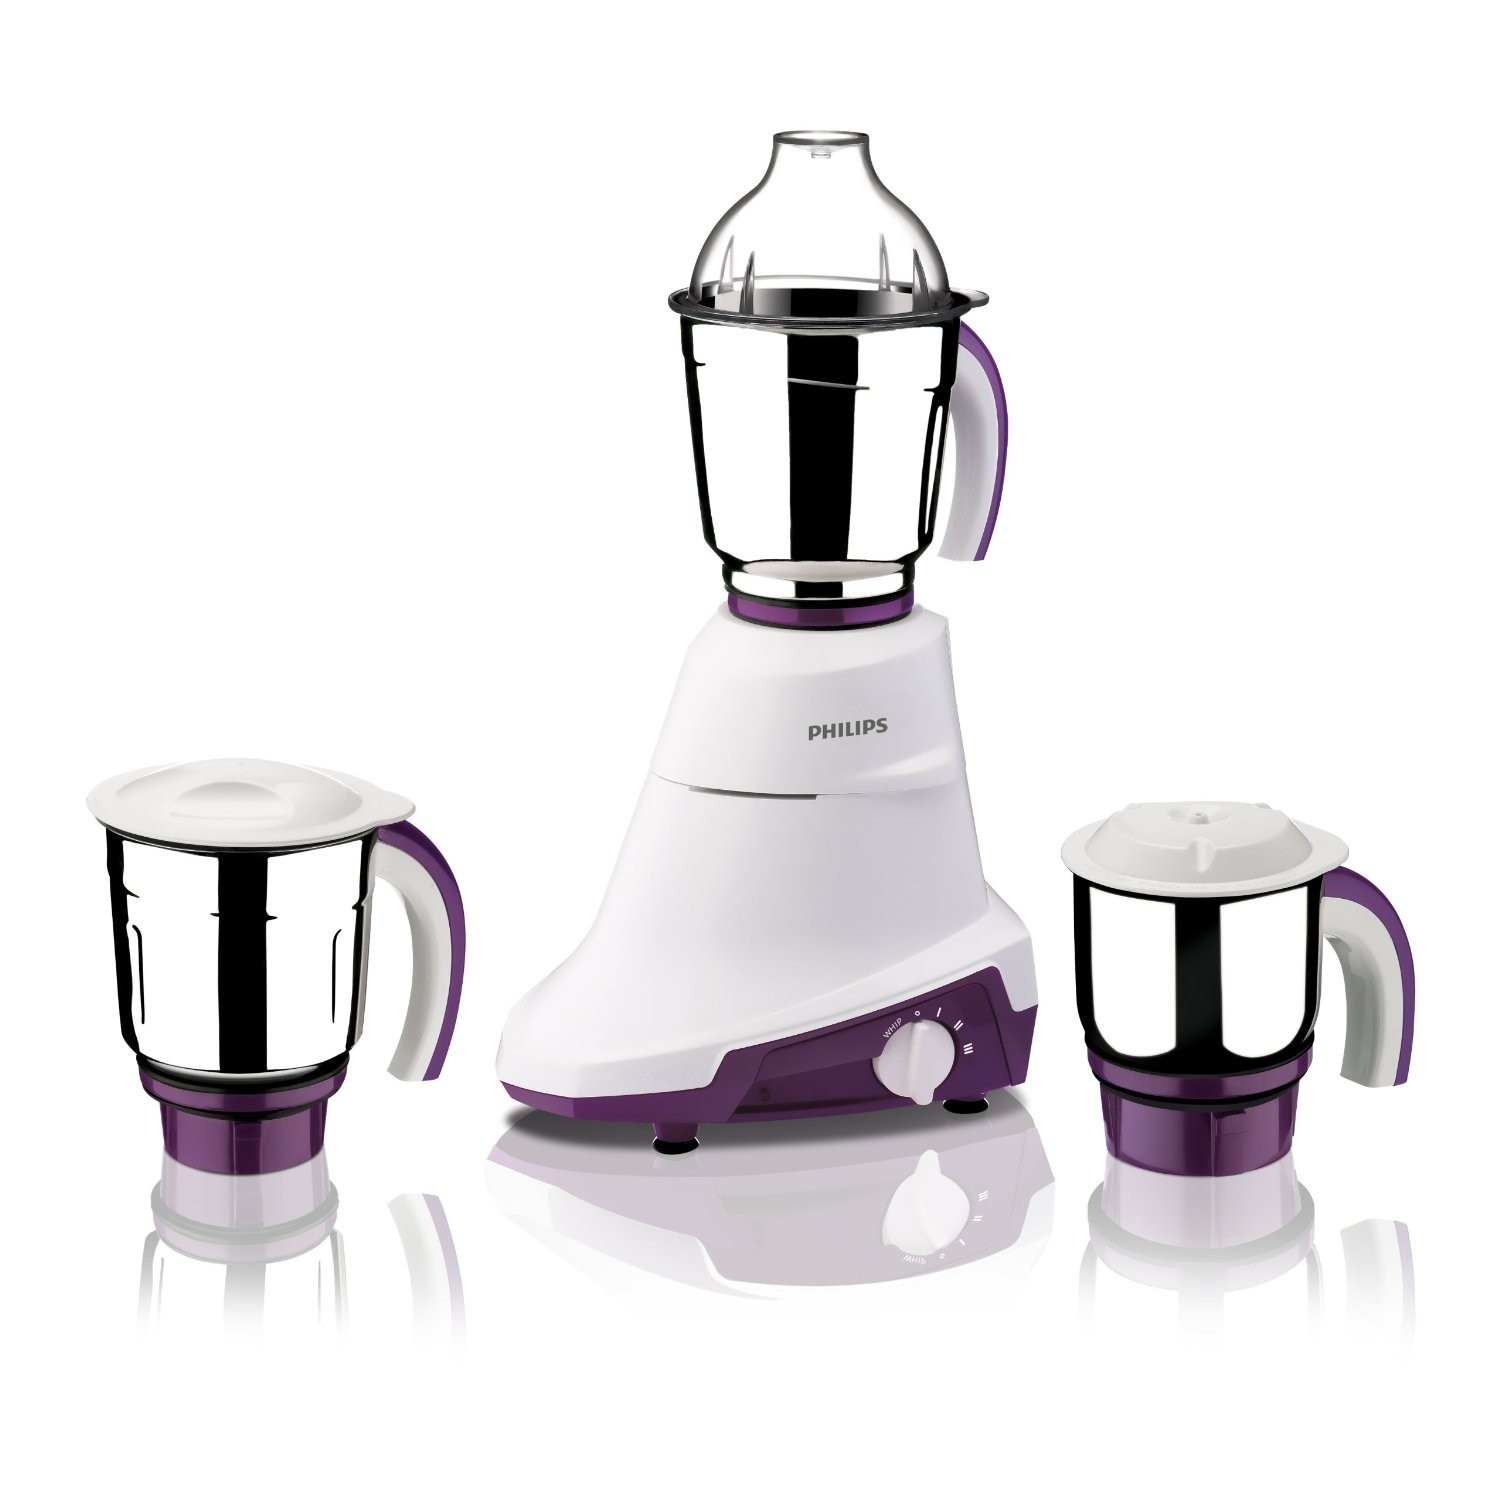 Philips Mixer Grinder HL 7697